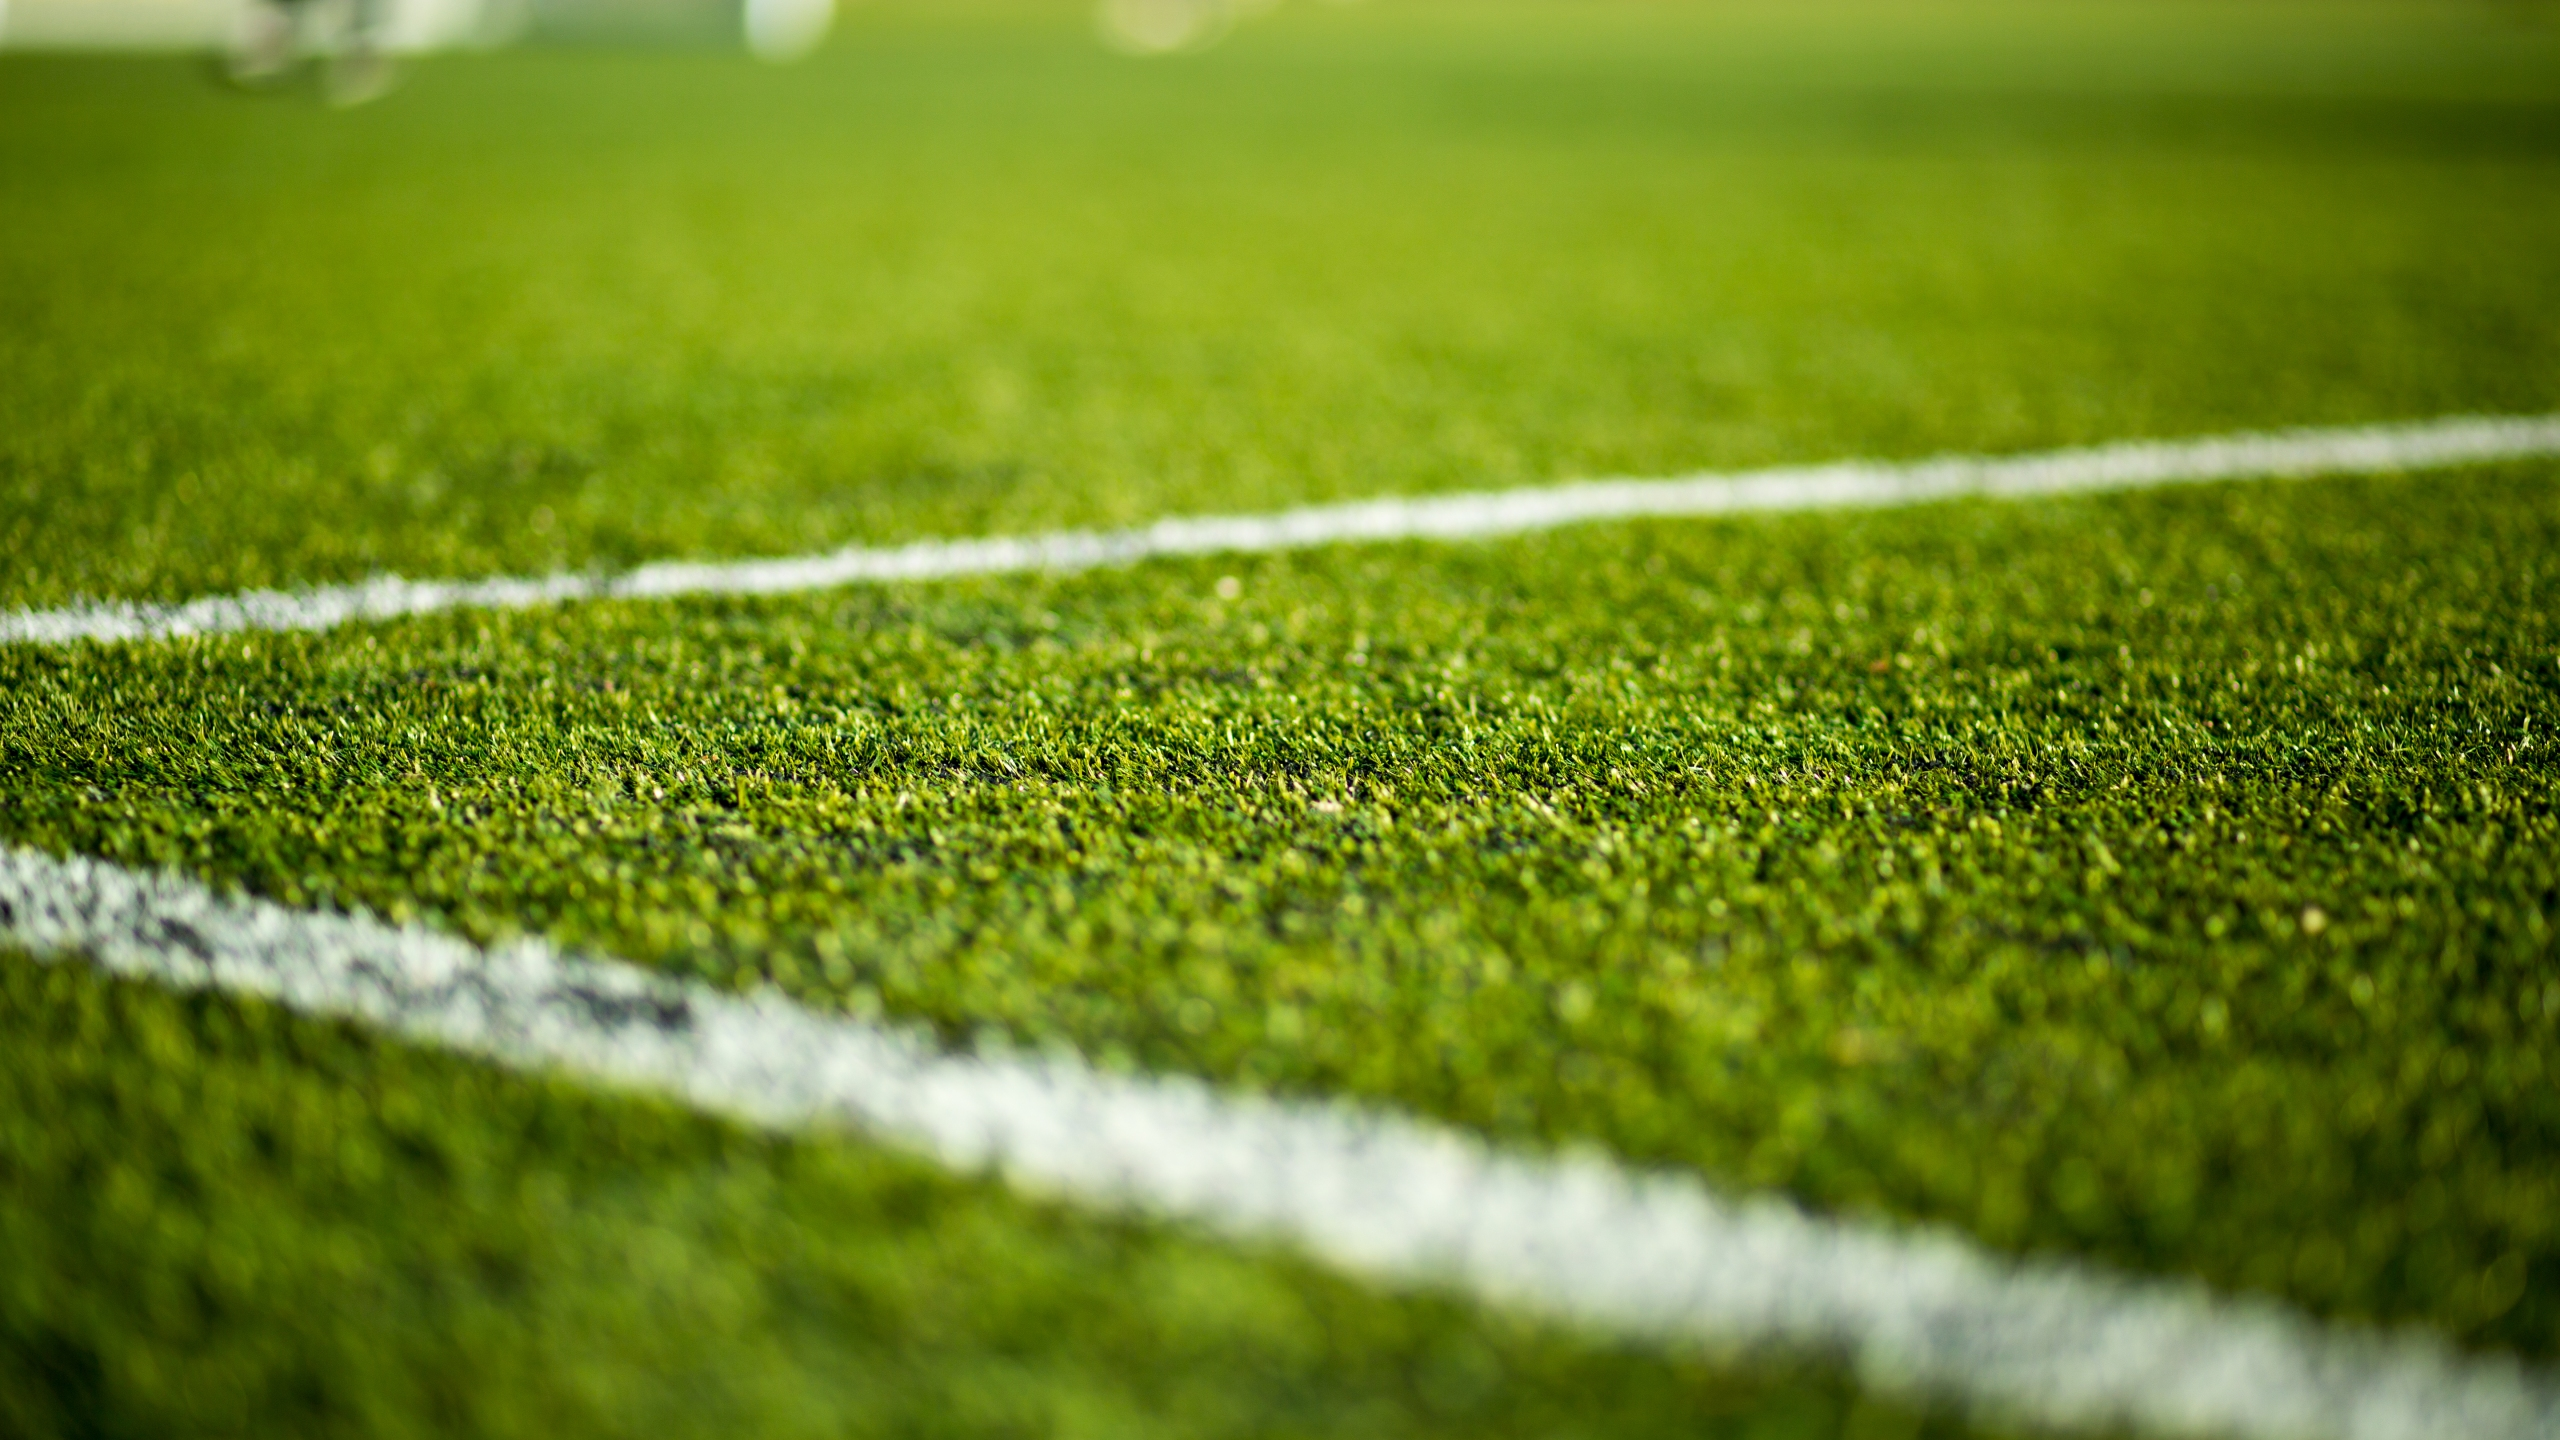 This file photo shows a soccer field. (Getty images)